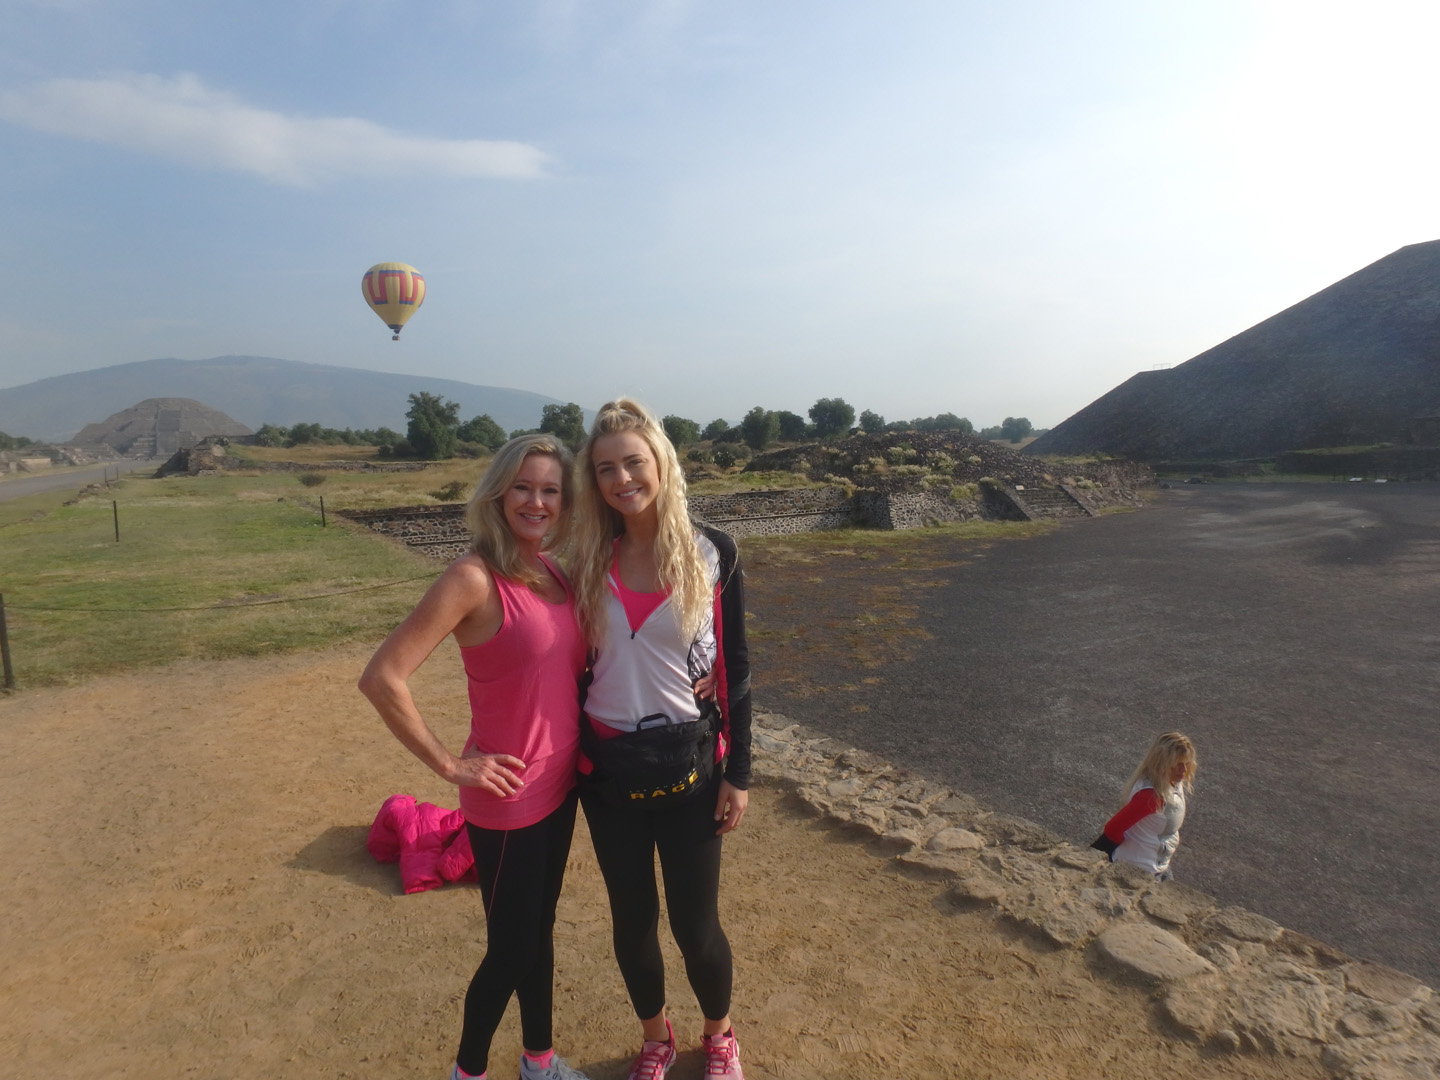 Marty and Hagan acted fast to capture the perfect picture next to a hot air balloon.